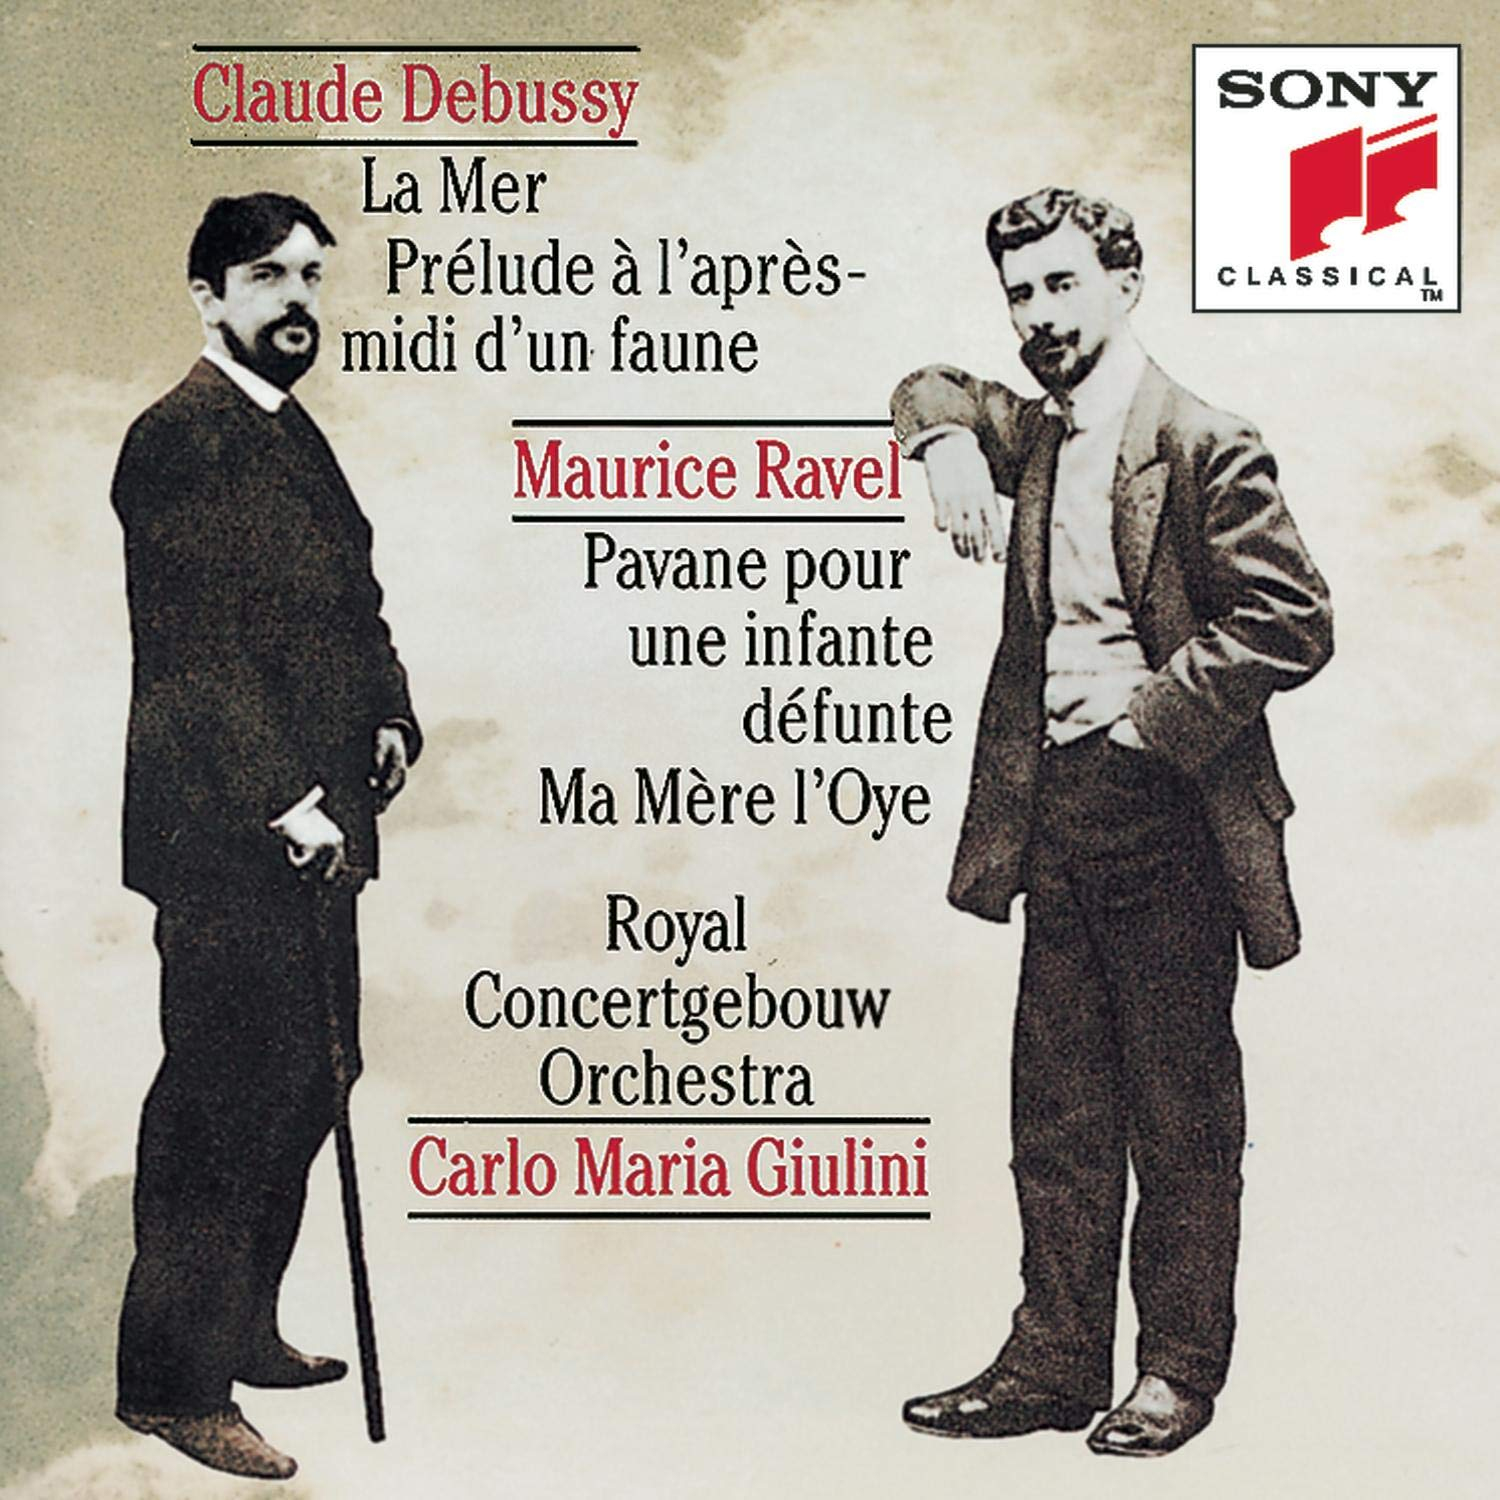 Debussy and Ravel: Orchestral Works by Sony Classical